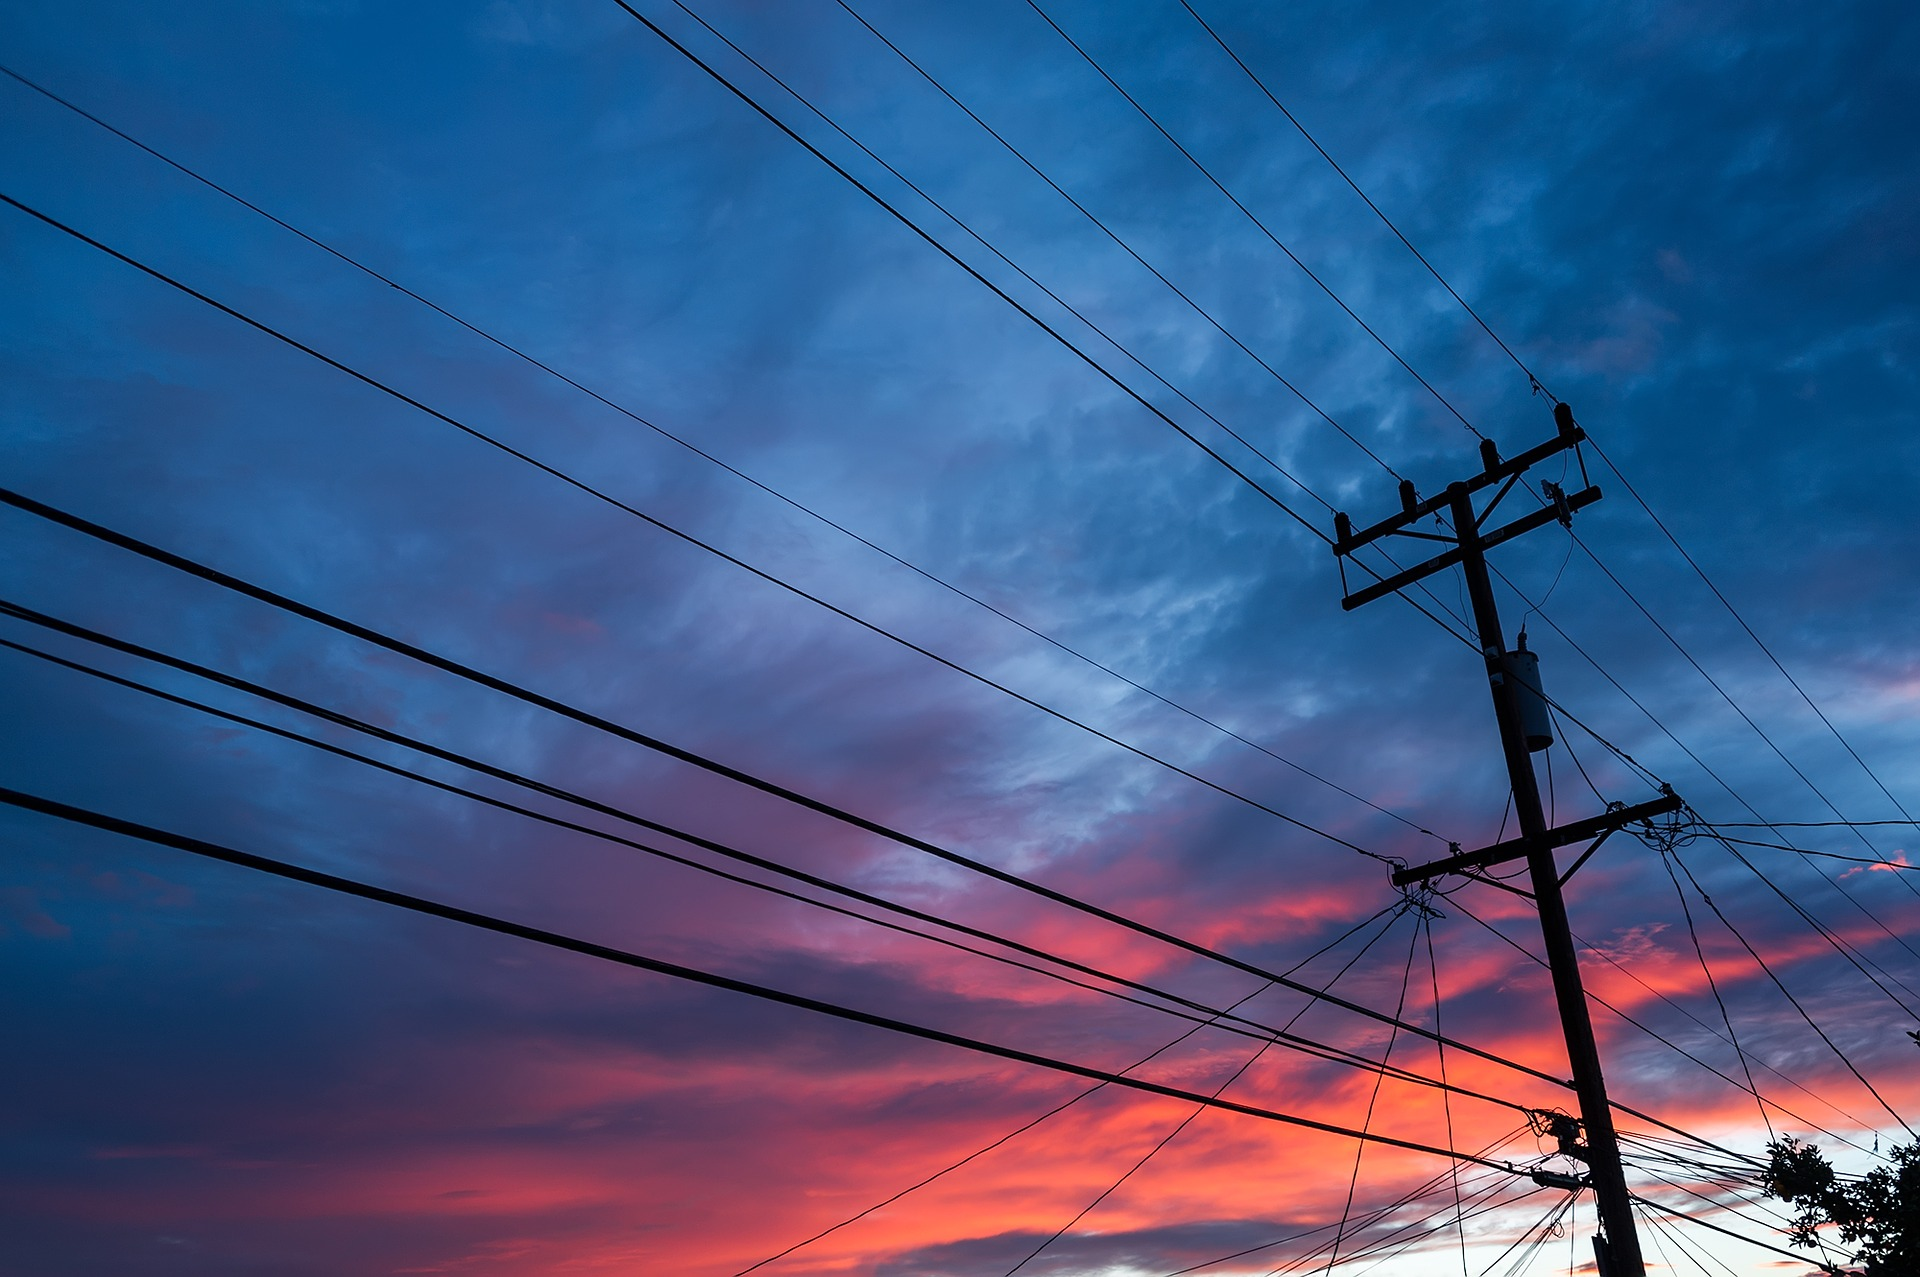 Electric Pole and Wires.jpg